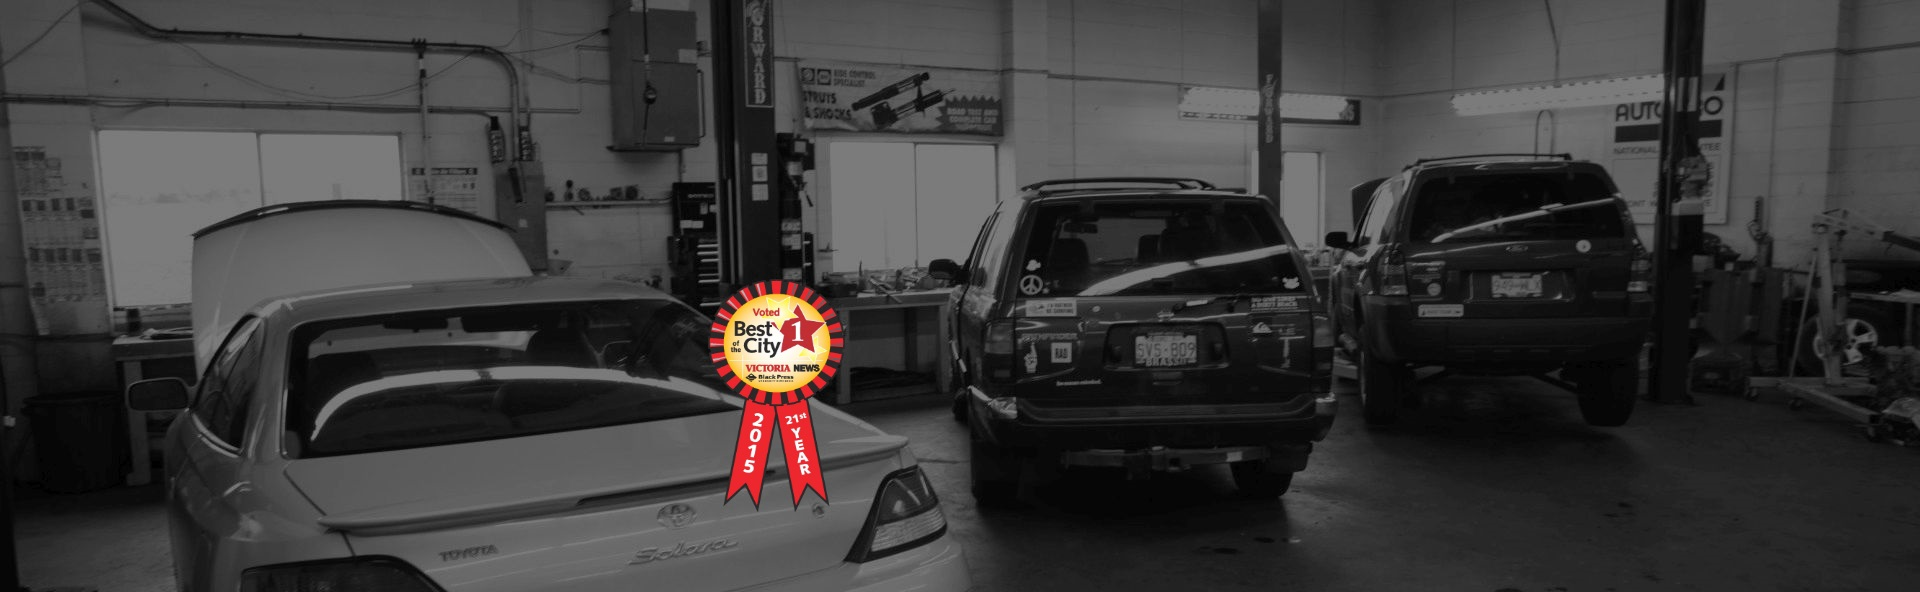 Searles Auto - Voted Best In The City 2015